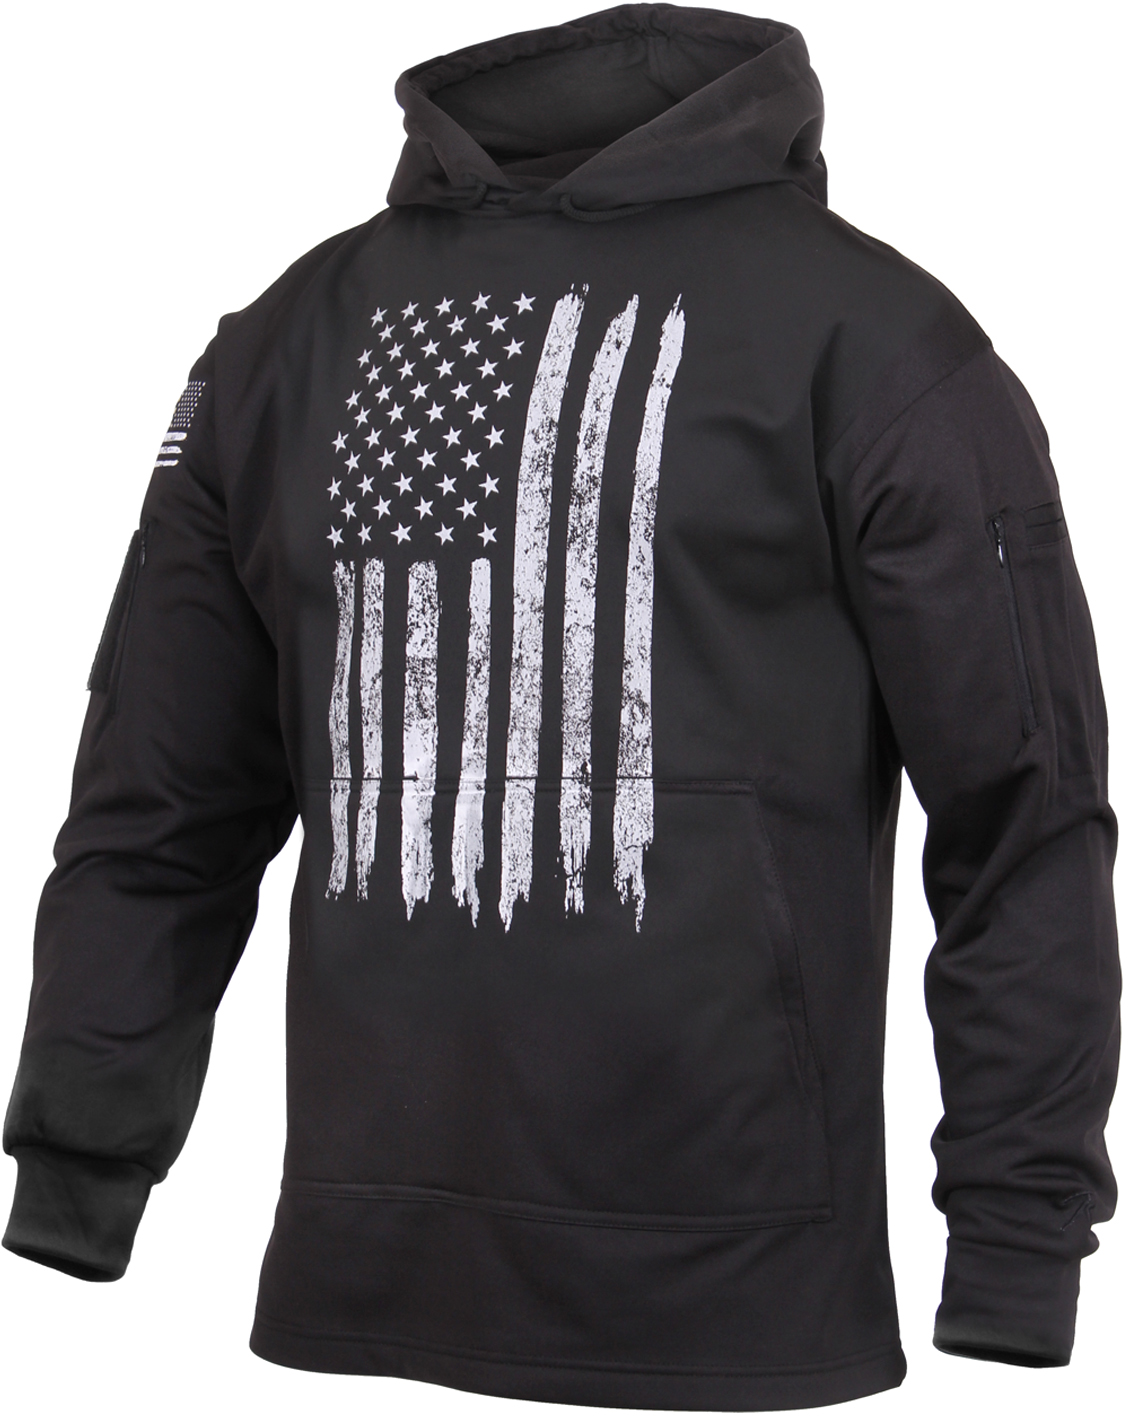 Rothco Distressed US Flag Concealed Carry Hooded Sweatshirt - Men's